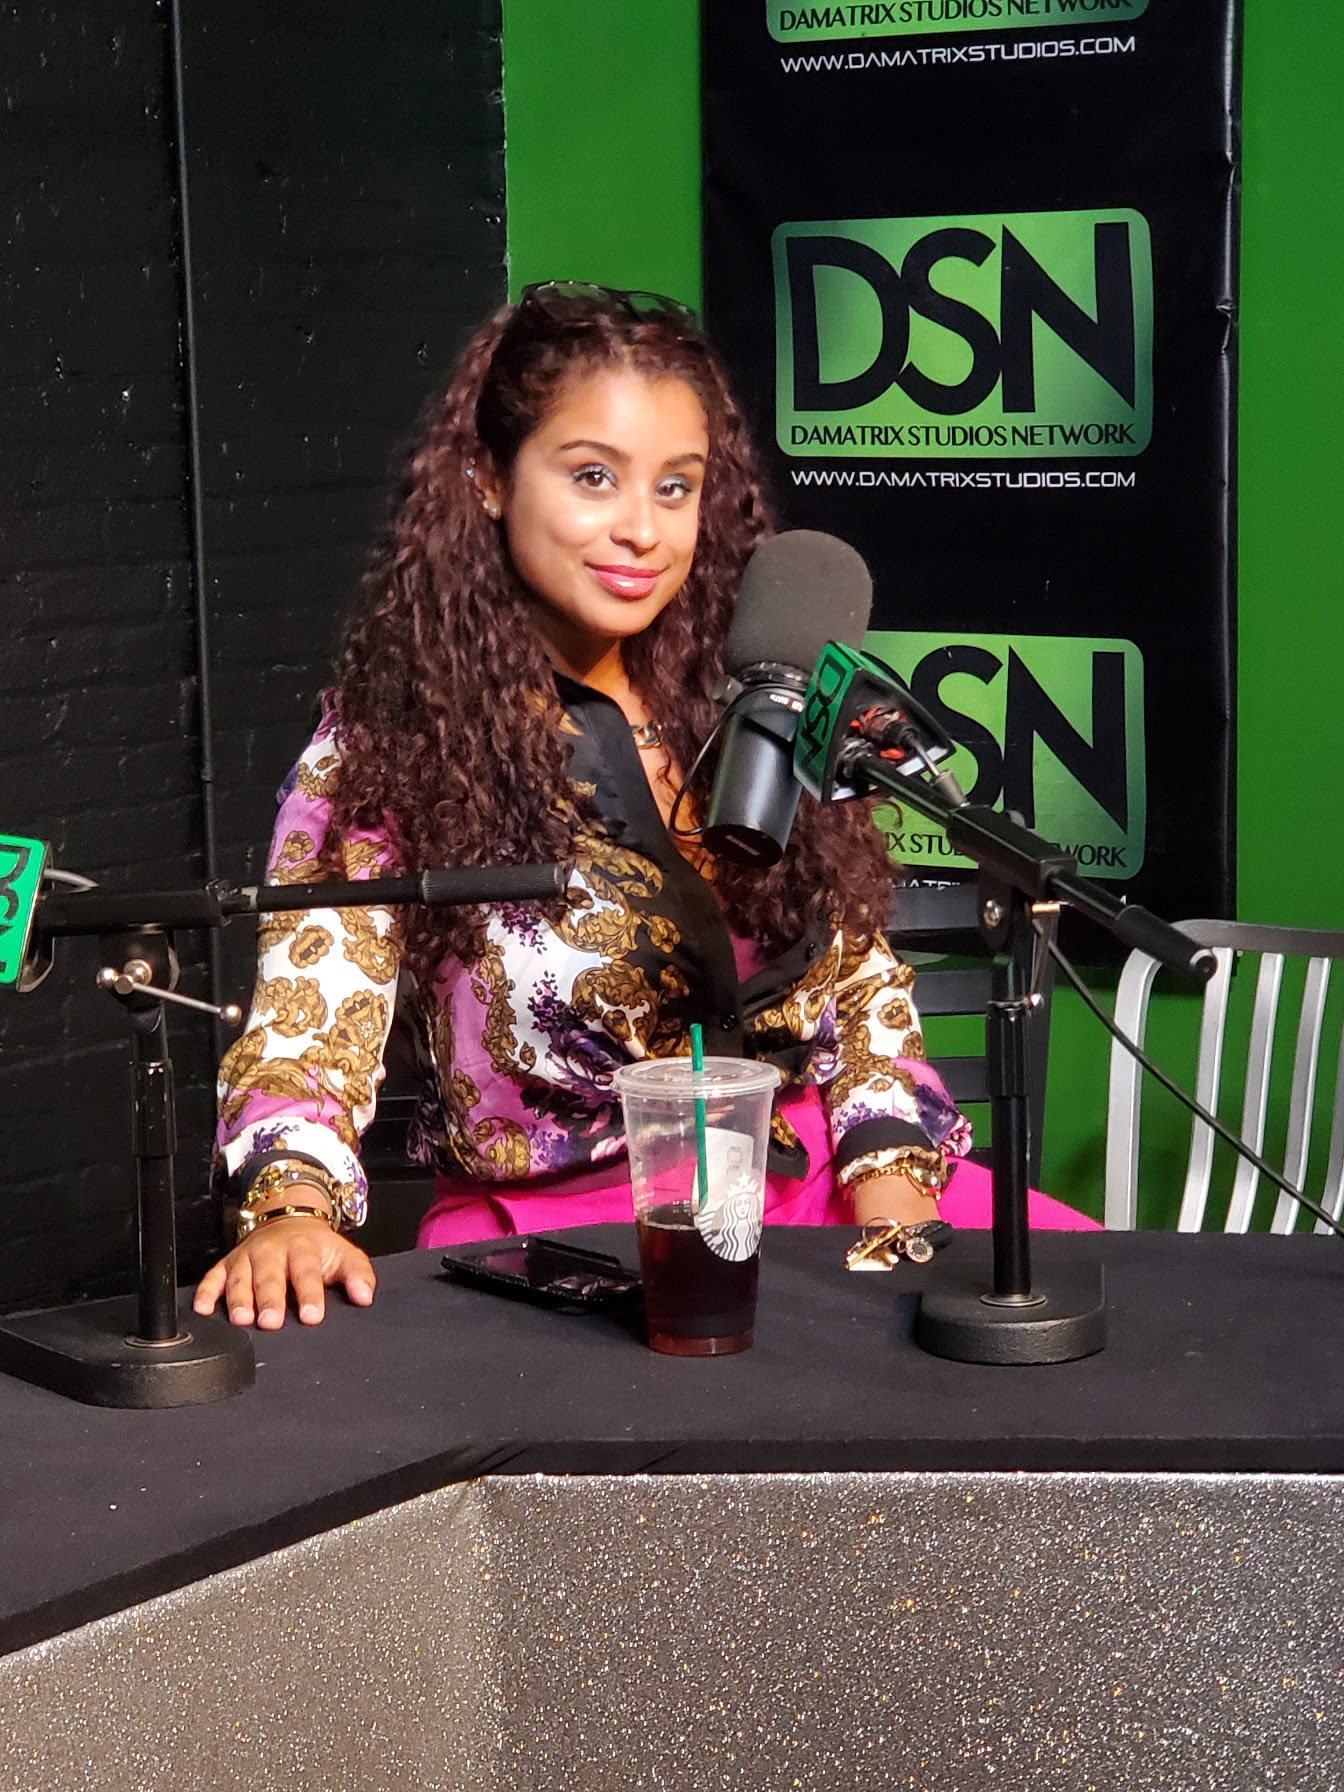 Interview at DSN Radio